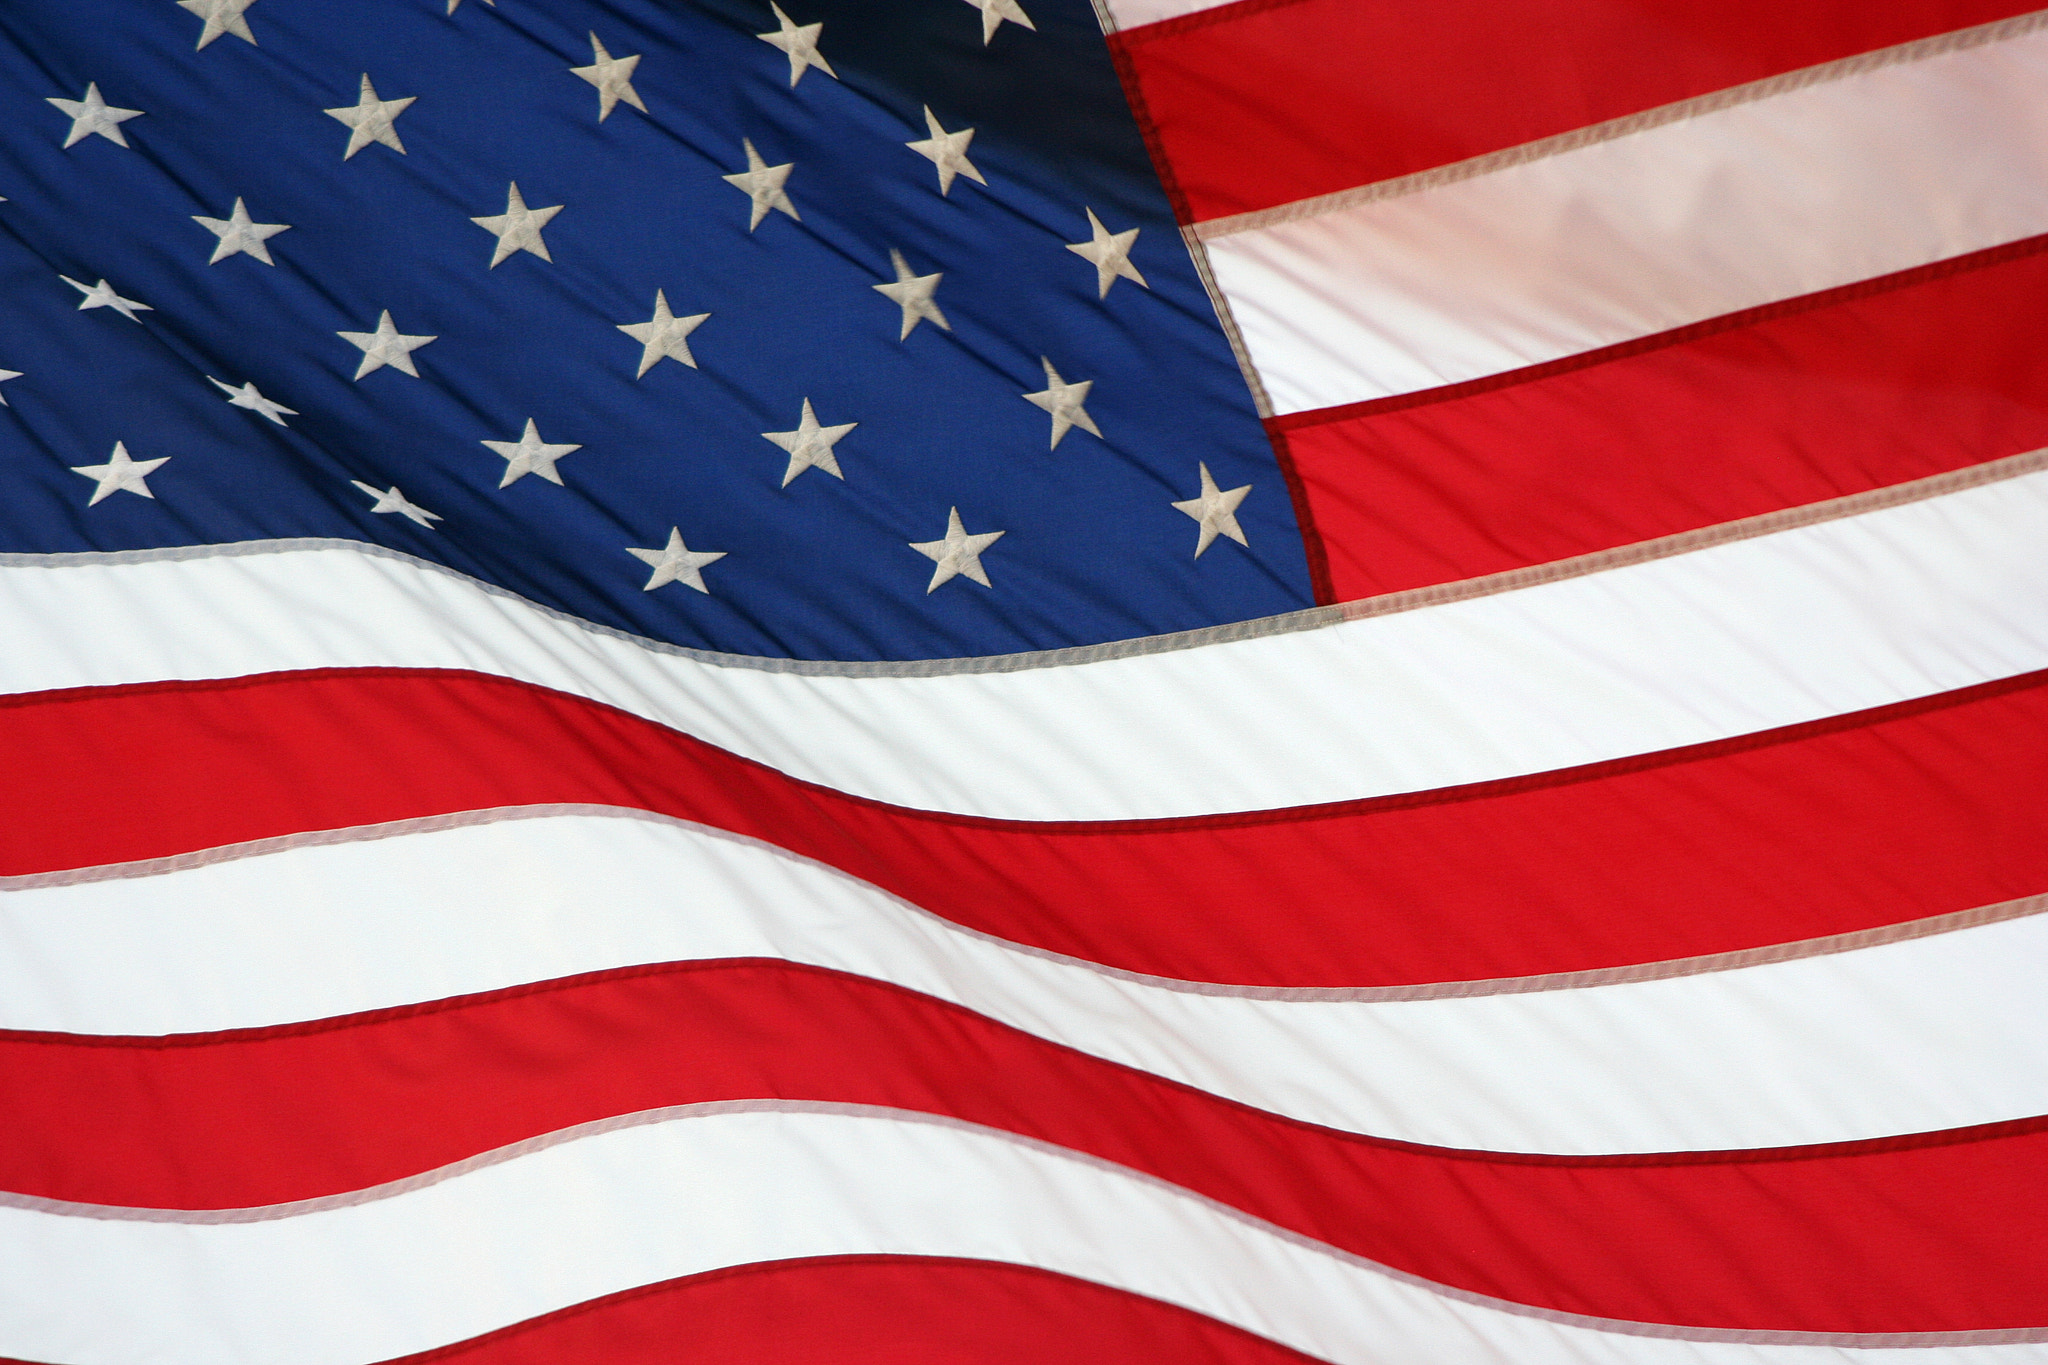 Photograph Stars and Stripes by Scott Olver on 500px